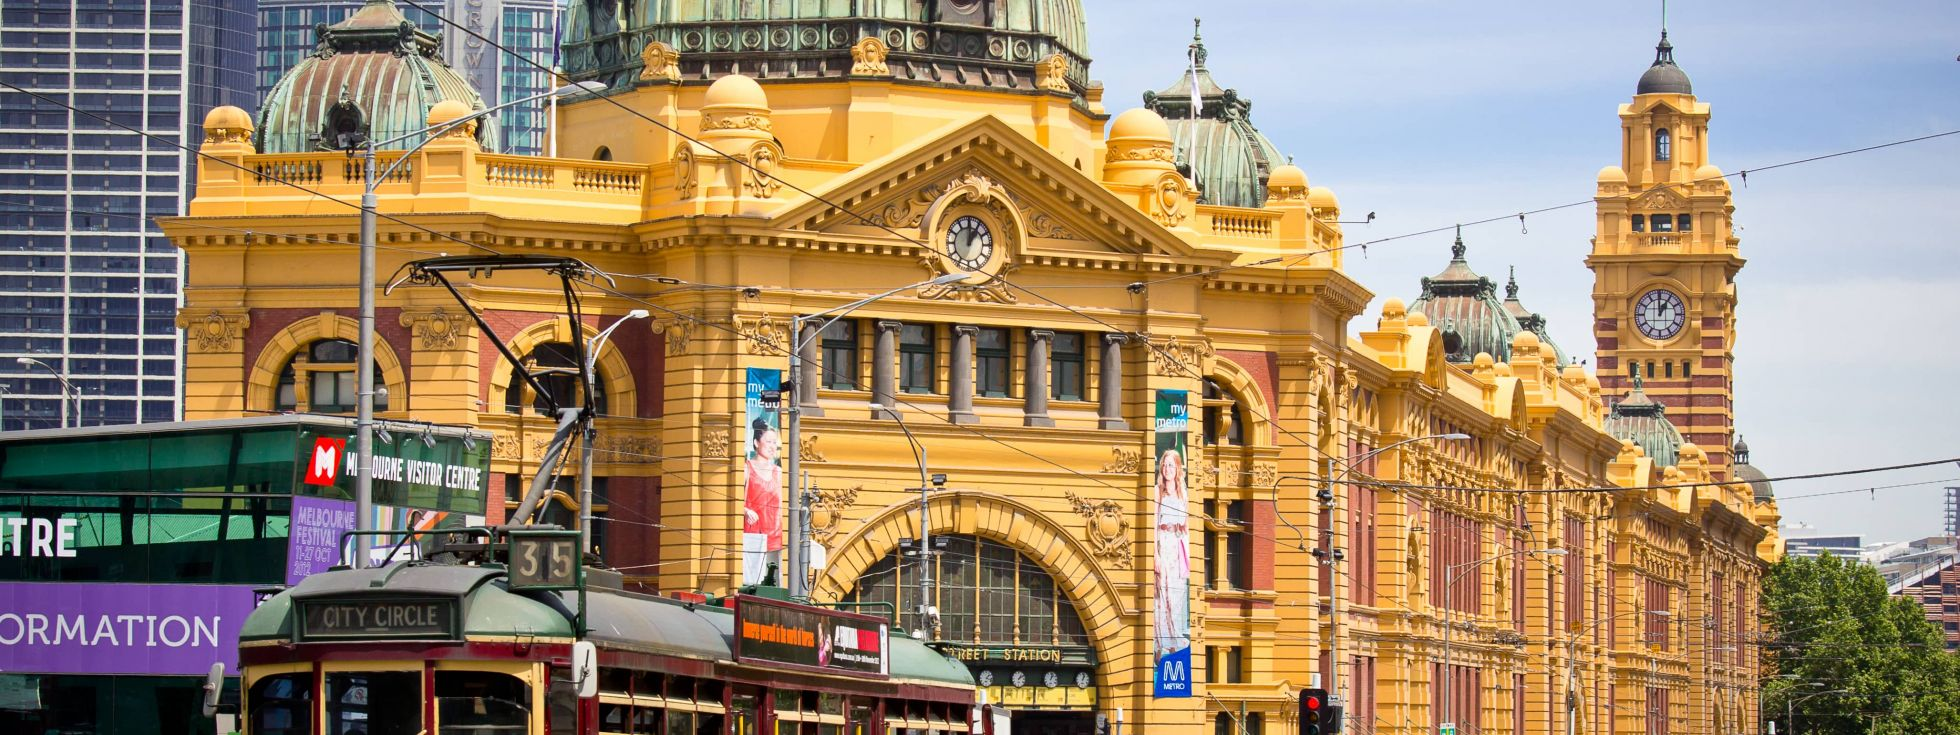 Melbourne Flinders street station as city tram passes by